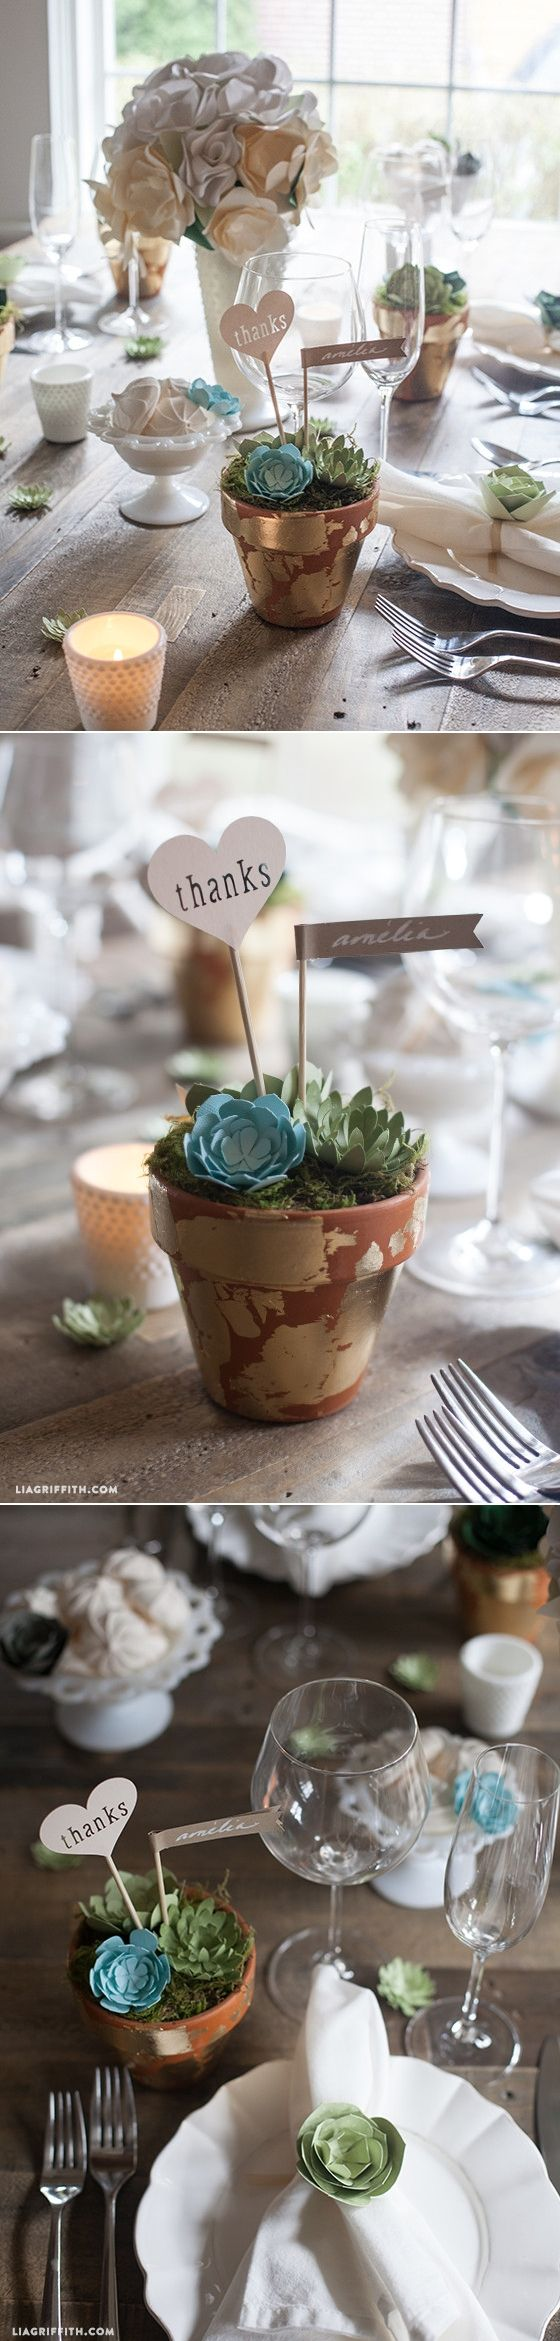 DIY Wedding Favors at www.LiaGriffith.com